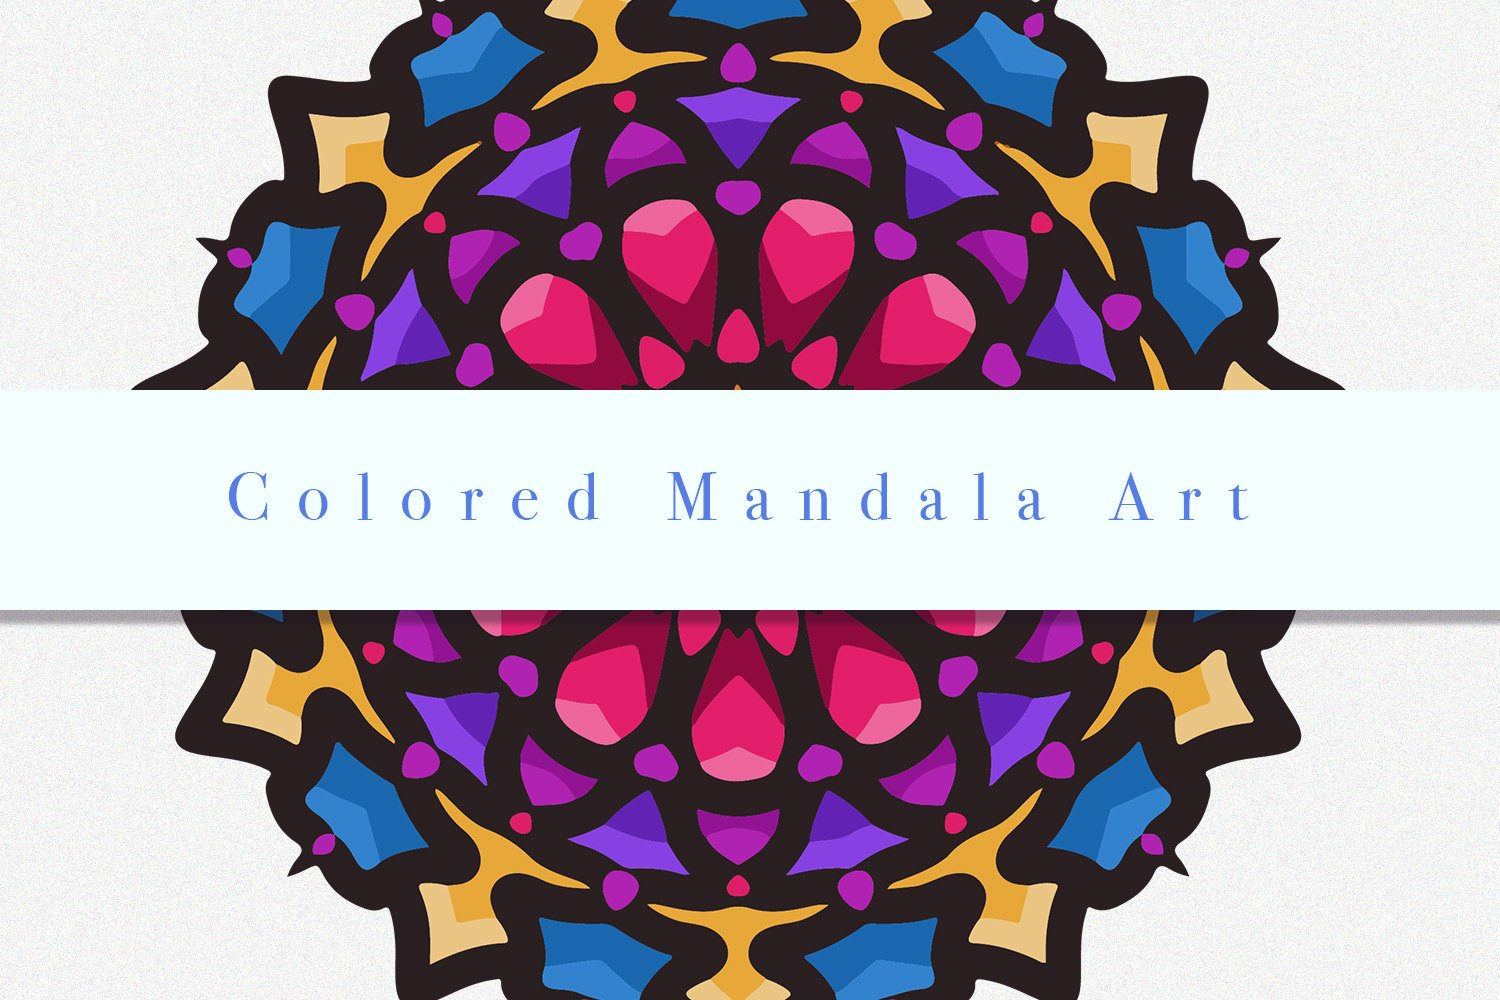 Colored Mandala Art 02 example image 3